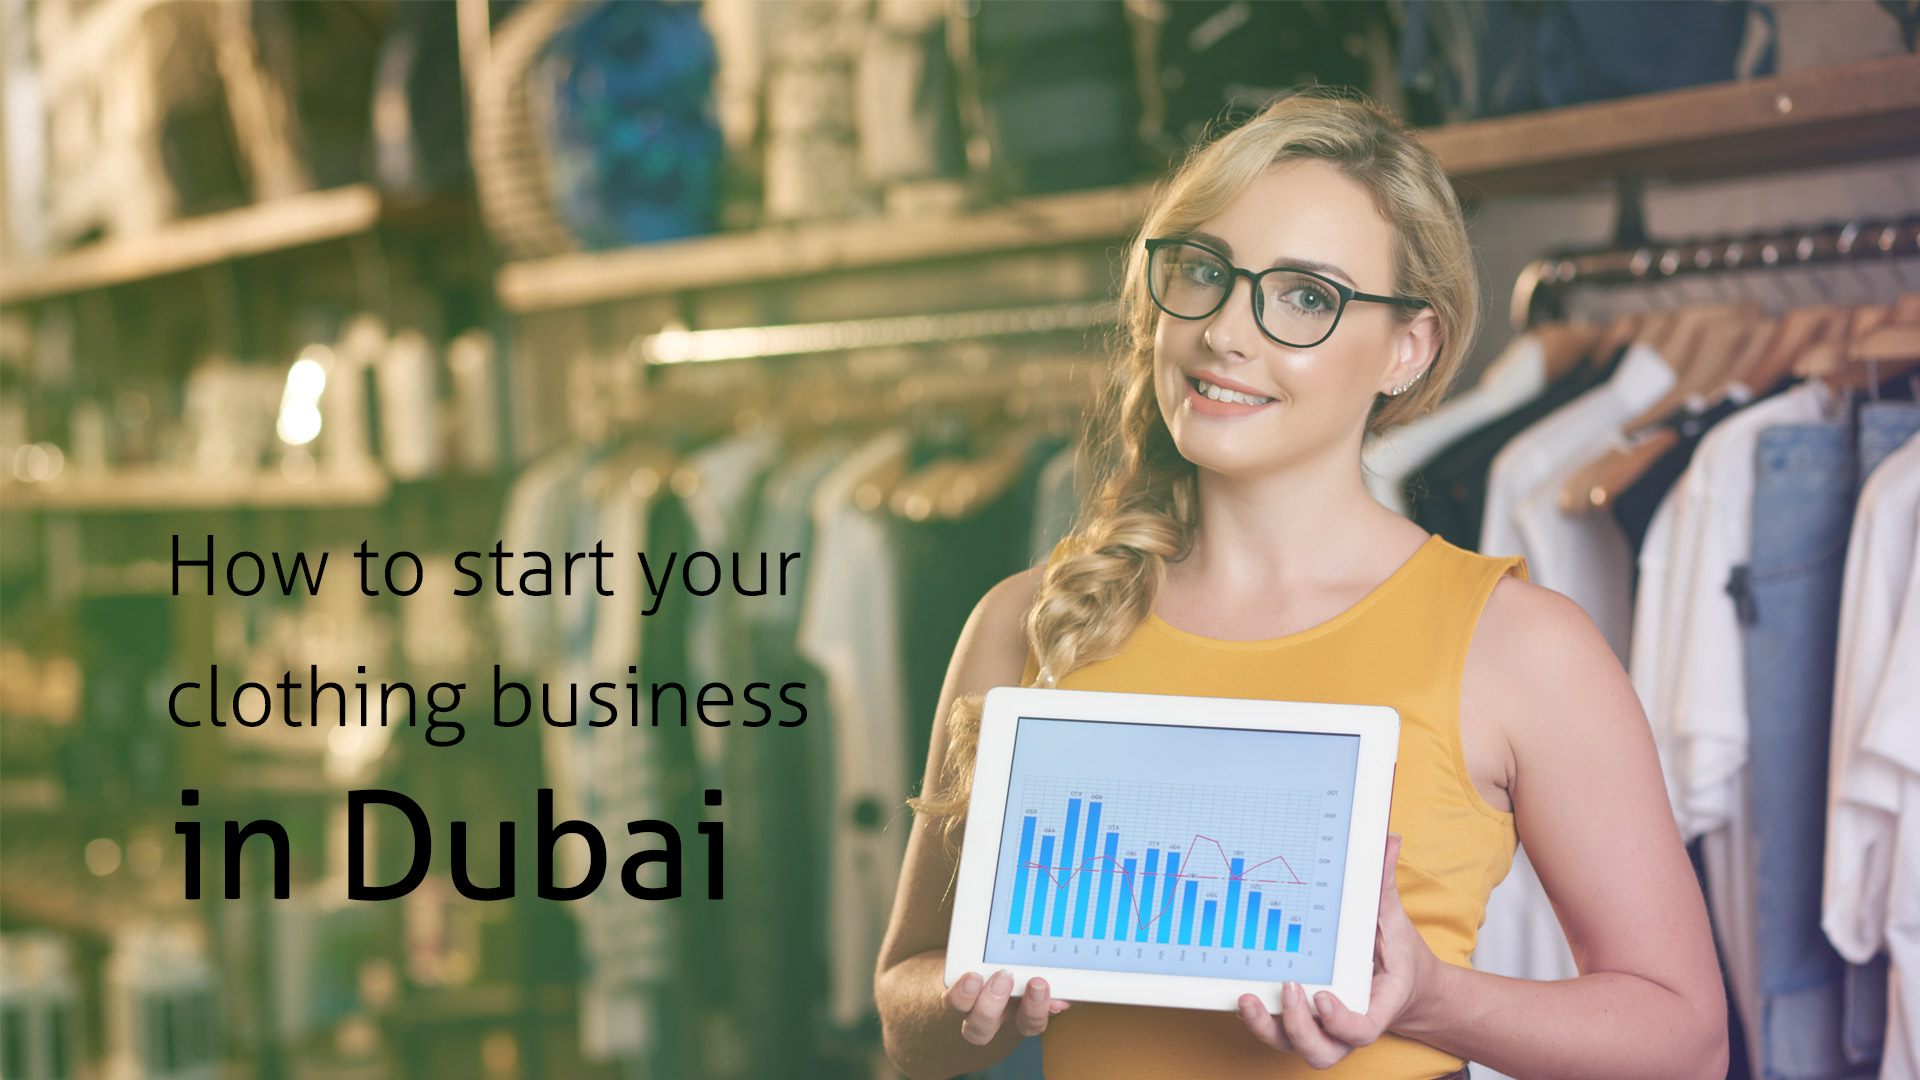 How to start your clothing business in Dubai